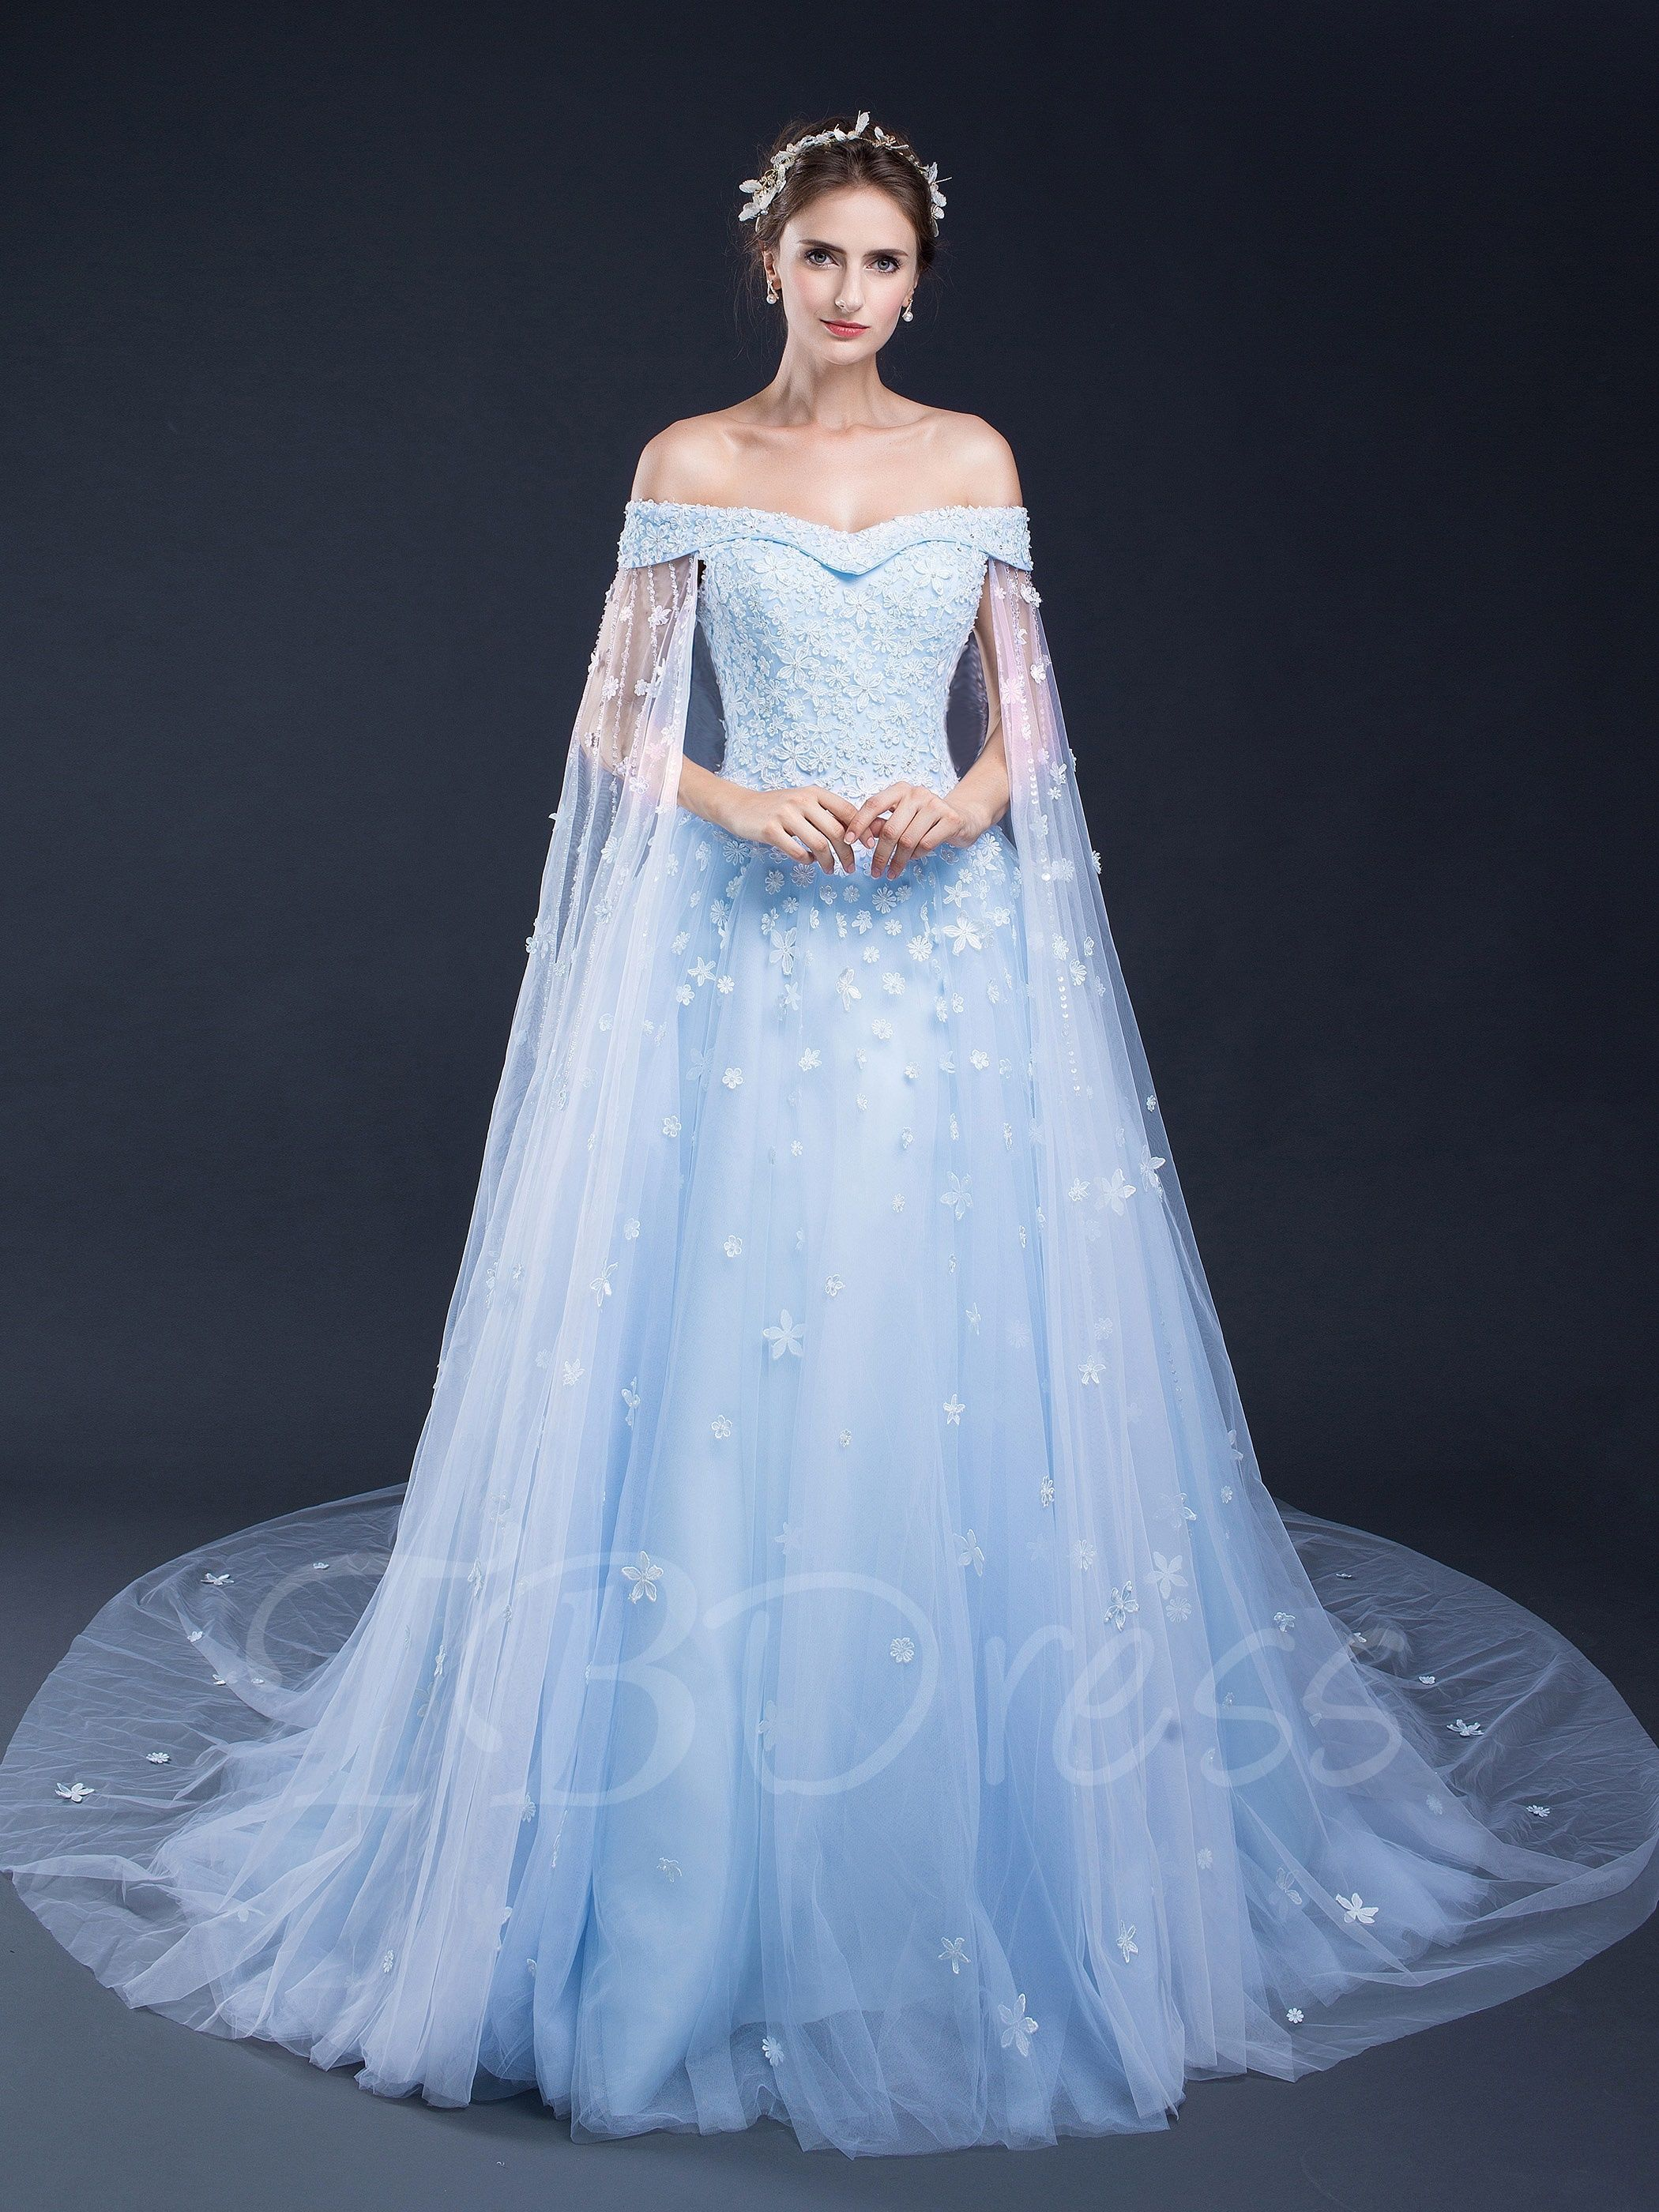 a1cd2d45a818 Tbdress.com offers high quality Off-the-Shoulder Cap Sleeves Appliques  Beading Watteau Train Prom Dress Prom Dresses 2017 unit price of $ 195.69.